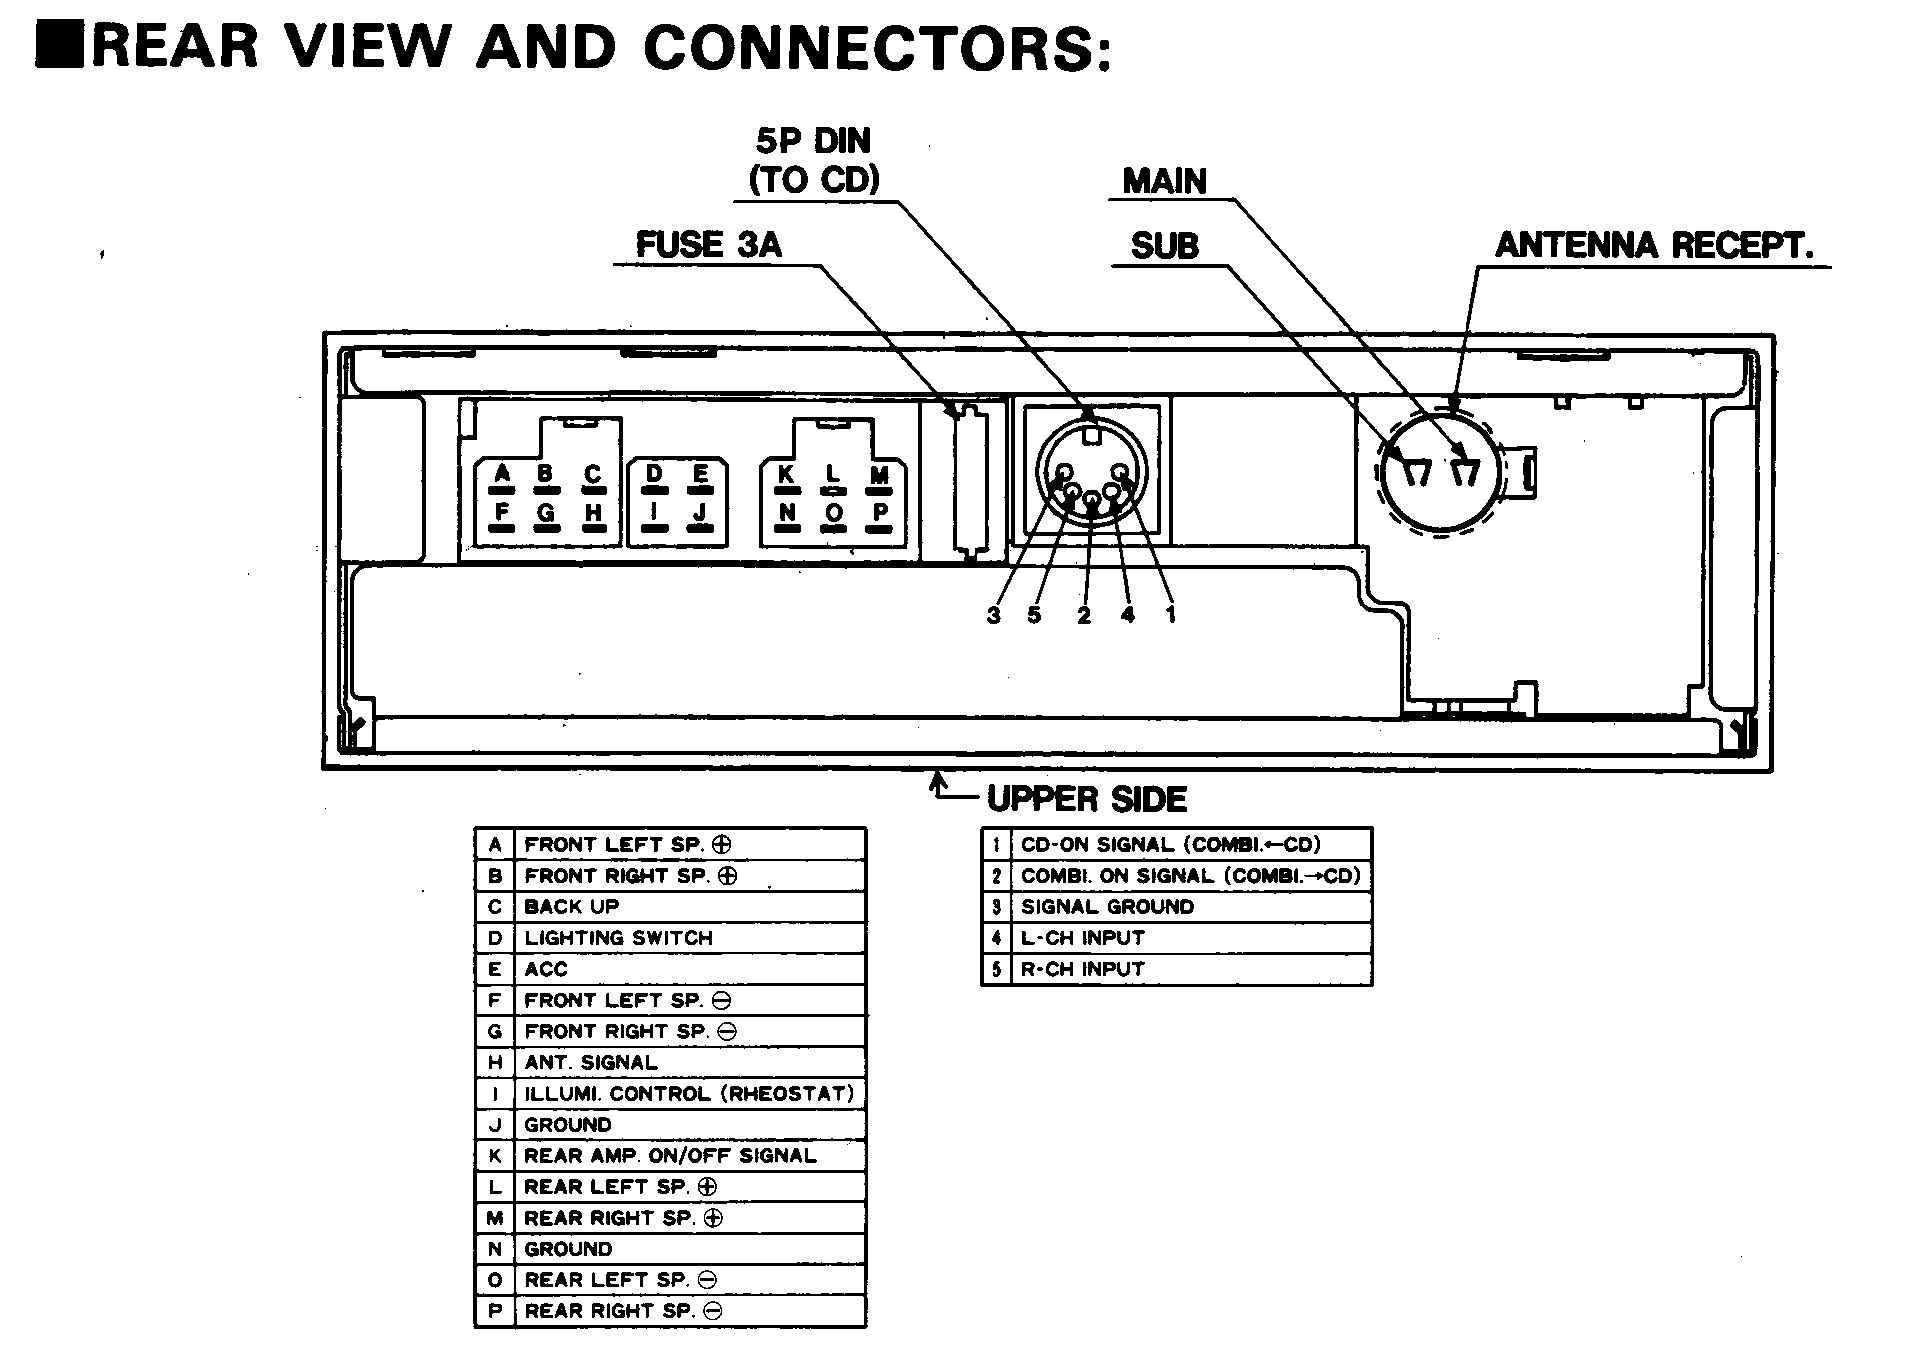 Radio Wiring Diagram S14 - 5.4.tramitesyconsultas.co • on freightliner lookup parts diagram, 2006 freightliner wiring diagram, freightliner xc chassis wiring diagram, 2000 freightliner wiring diagram, 2006 freightliner columbia heater diagram, 1997 freightliner wiring diagram, freightliner radio wiring diagram, freightliner ac wiring diagram, freightliner columbia fuse box diagram, 1995 freightliner wiring diagram, 06 freightliner wiring diagram, cummins celect plus wiring diagram, 2007 freightliner wiring diagram, freightliner air system diagram, freightliner fuse panel diagram, 2003 freightliner columbia wiring diagram, hvac blower motor wiring diagram, freightliner truck parts diagram, 2008 freightliner wiring diagram, 2002 freightliner wiring diagram,